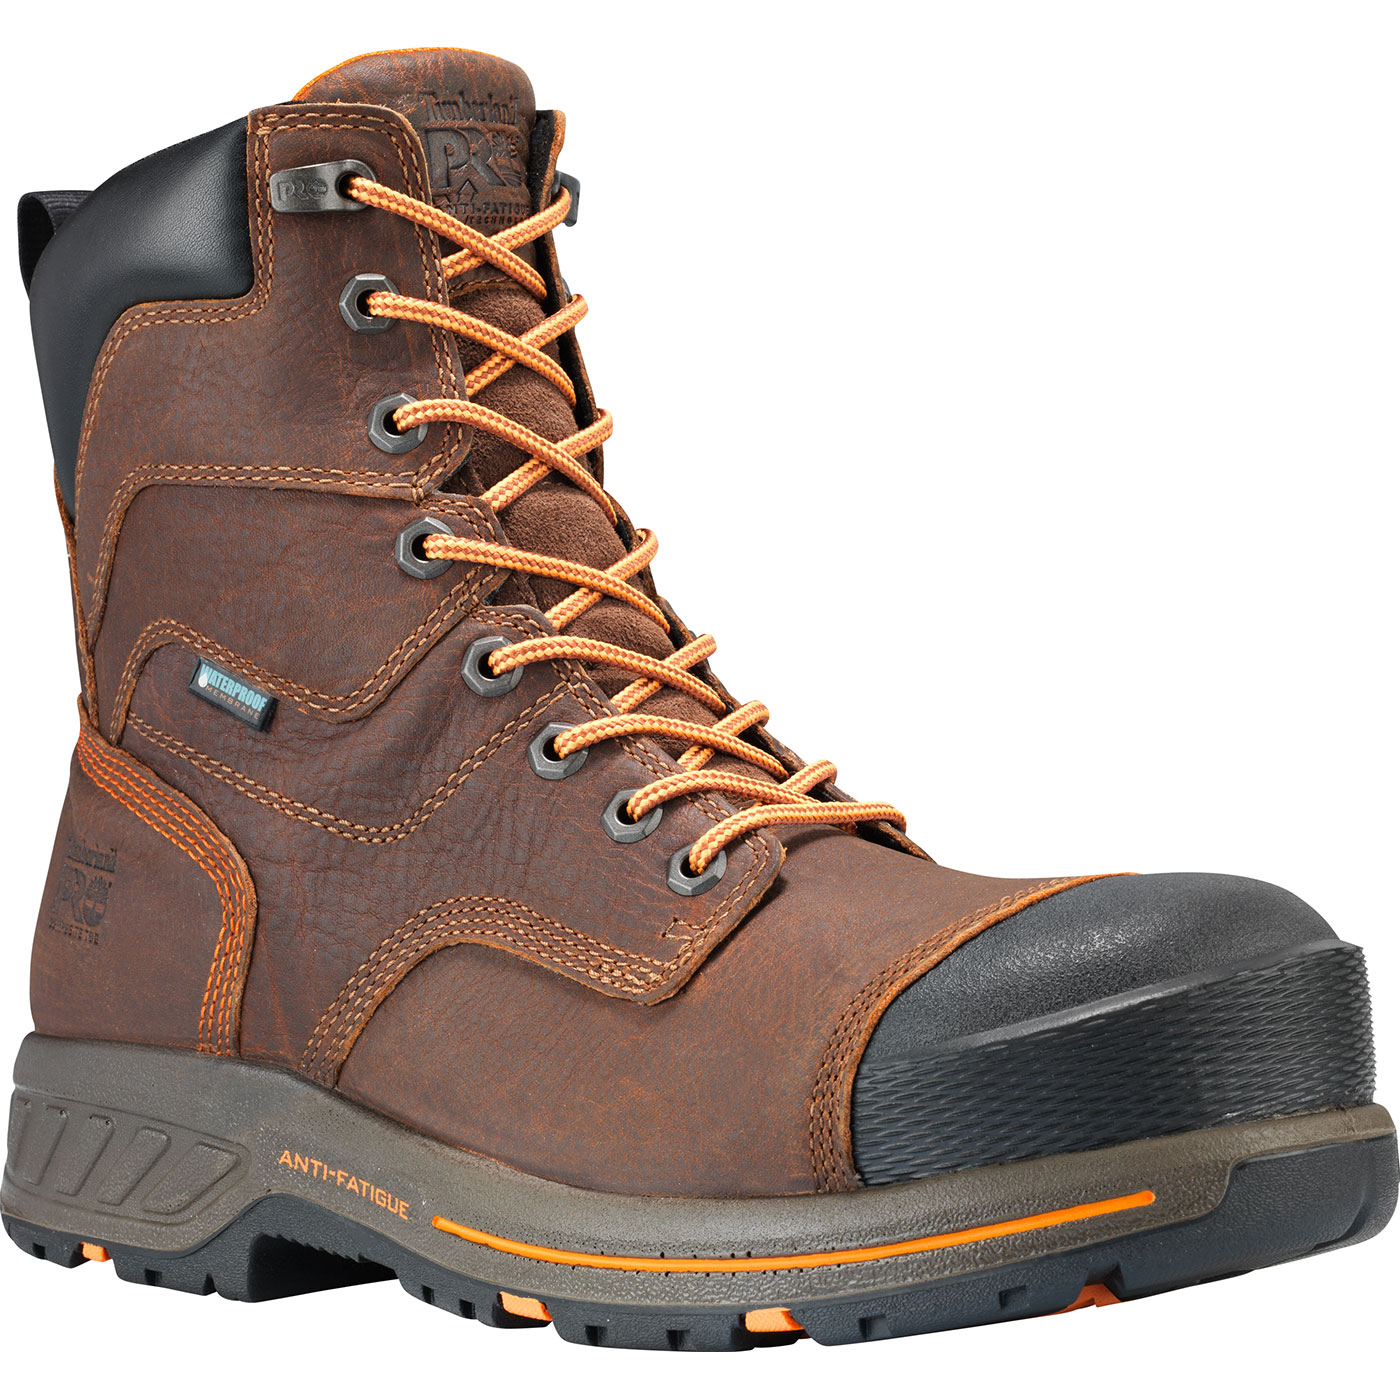 5763a69b983 Timberland PRO Helix HD Men's 8 inch Composite Toe Waterproof Work  BootTimberland PRO Helix HD Men's 8 inch Composite Toe Waterproof Work Boot,